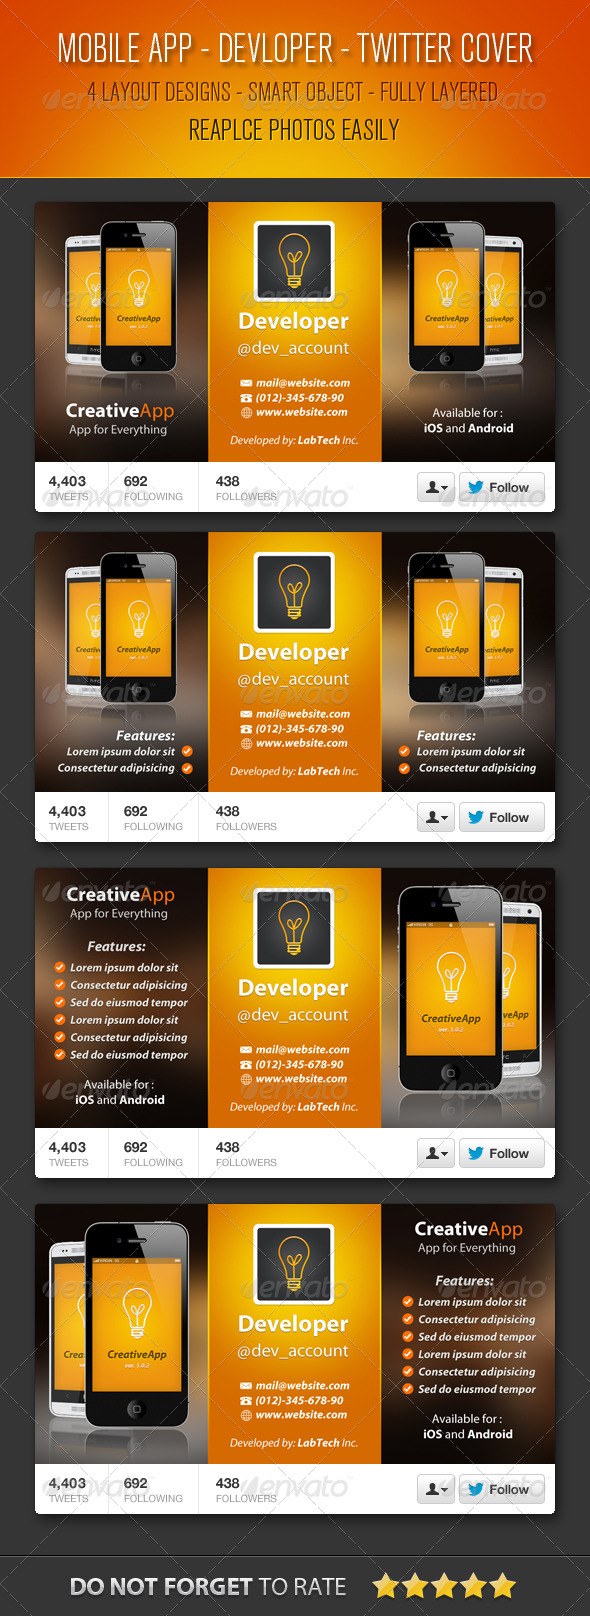 Mobile App Developer Twitter Cover by myboodesign   GraphicRiver